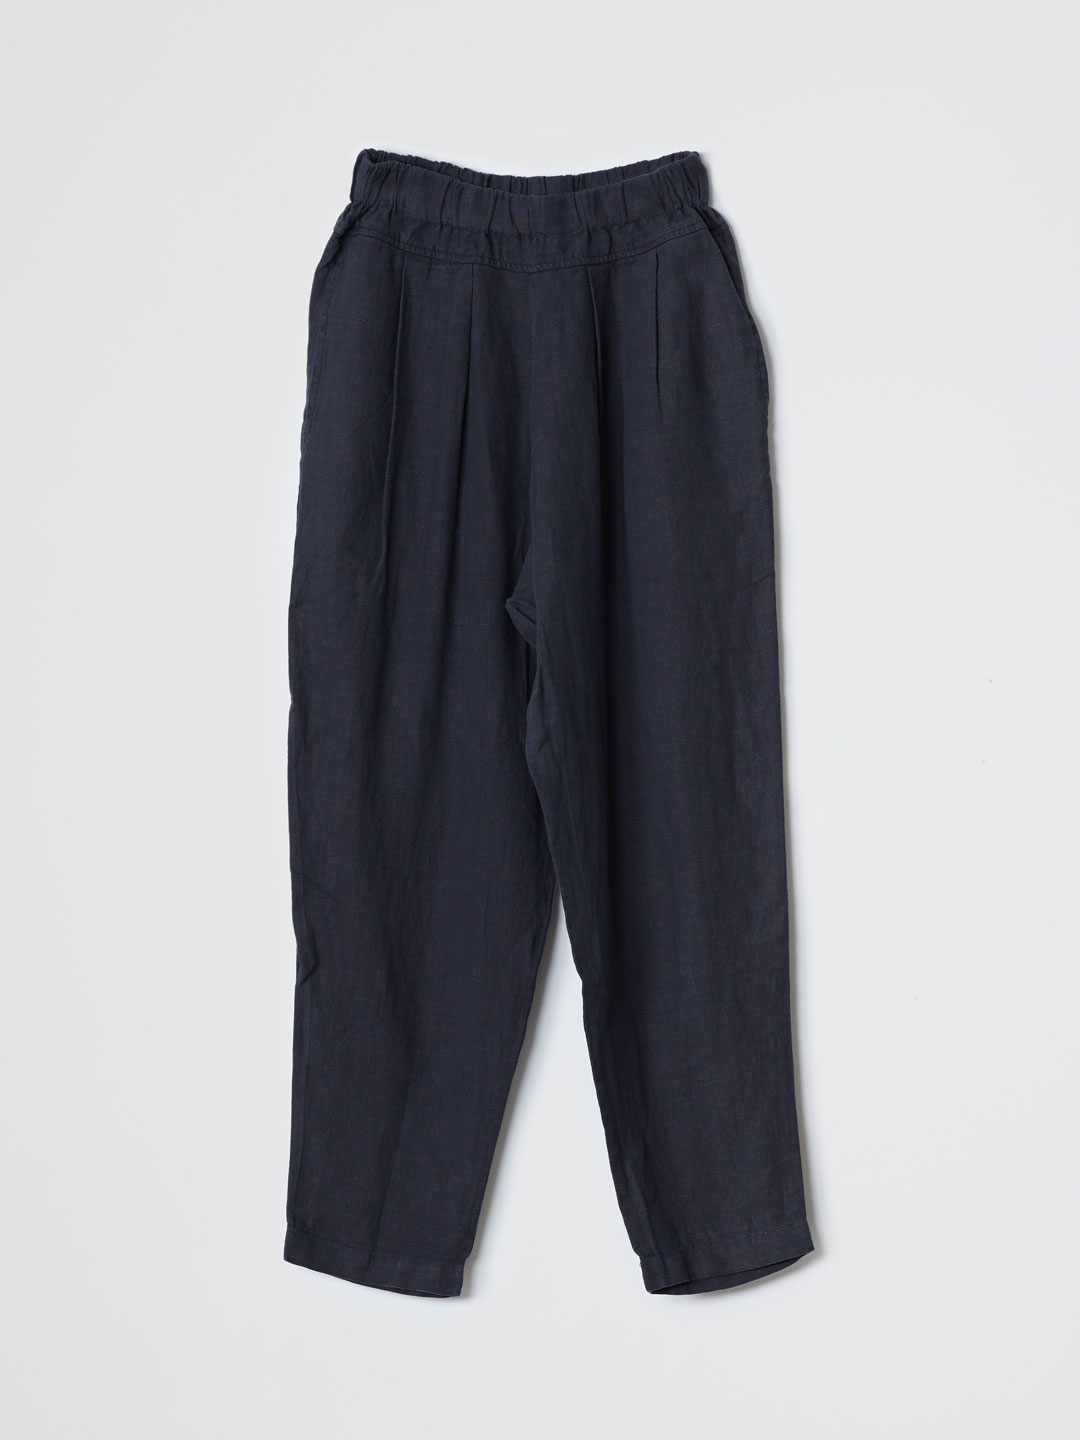 Carpenter Pants - Black